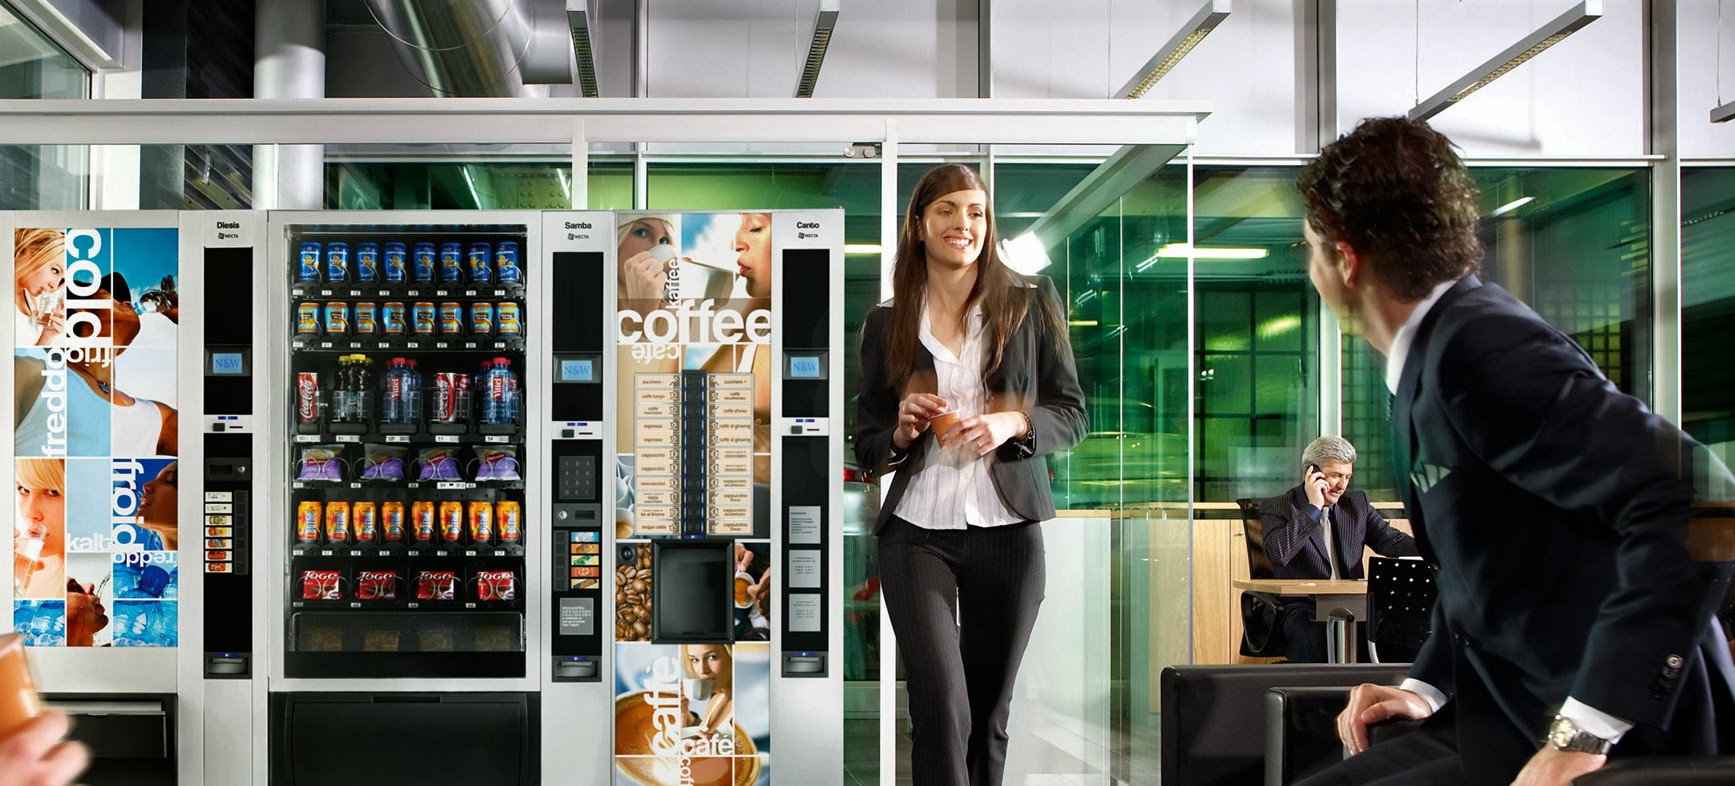 Image result for vending machine OFFICE